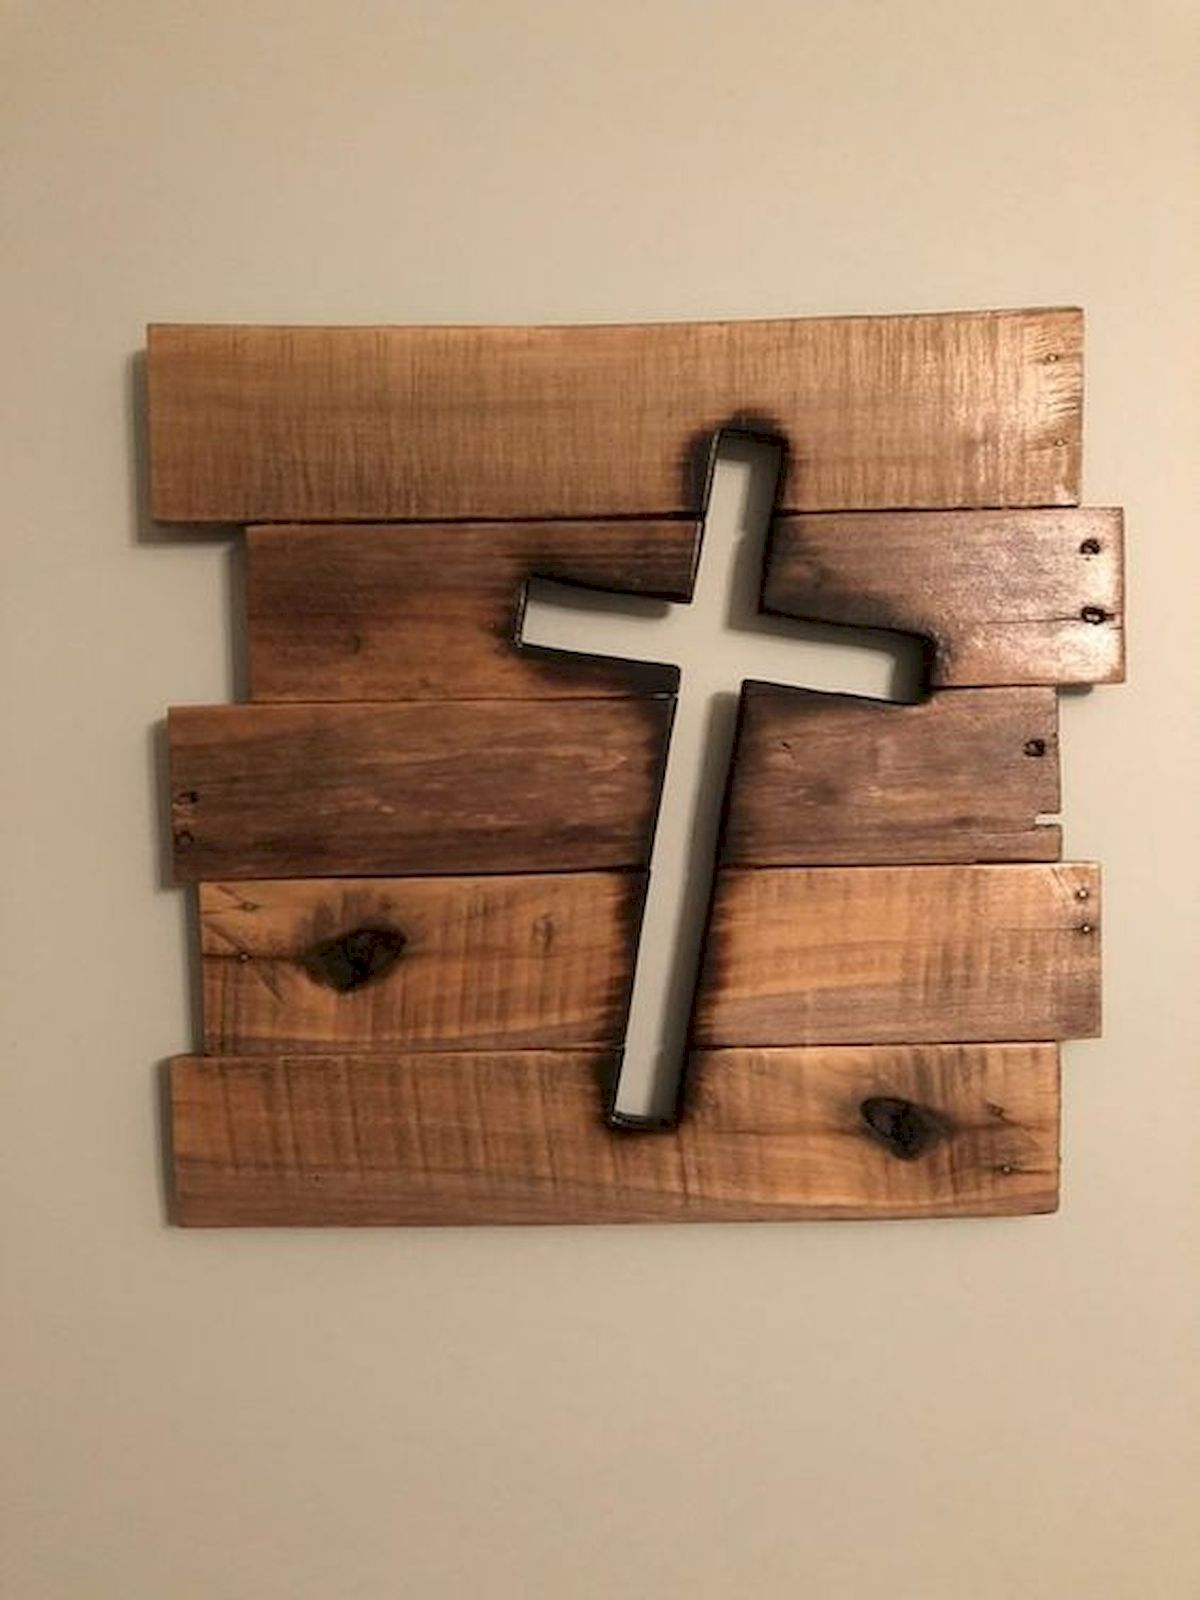 60 Easy DIY Wood Projects for Beginners (35)